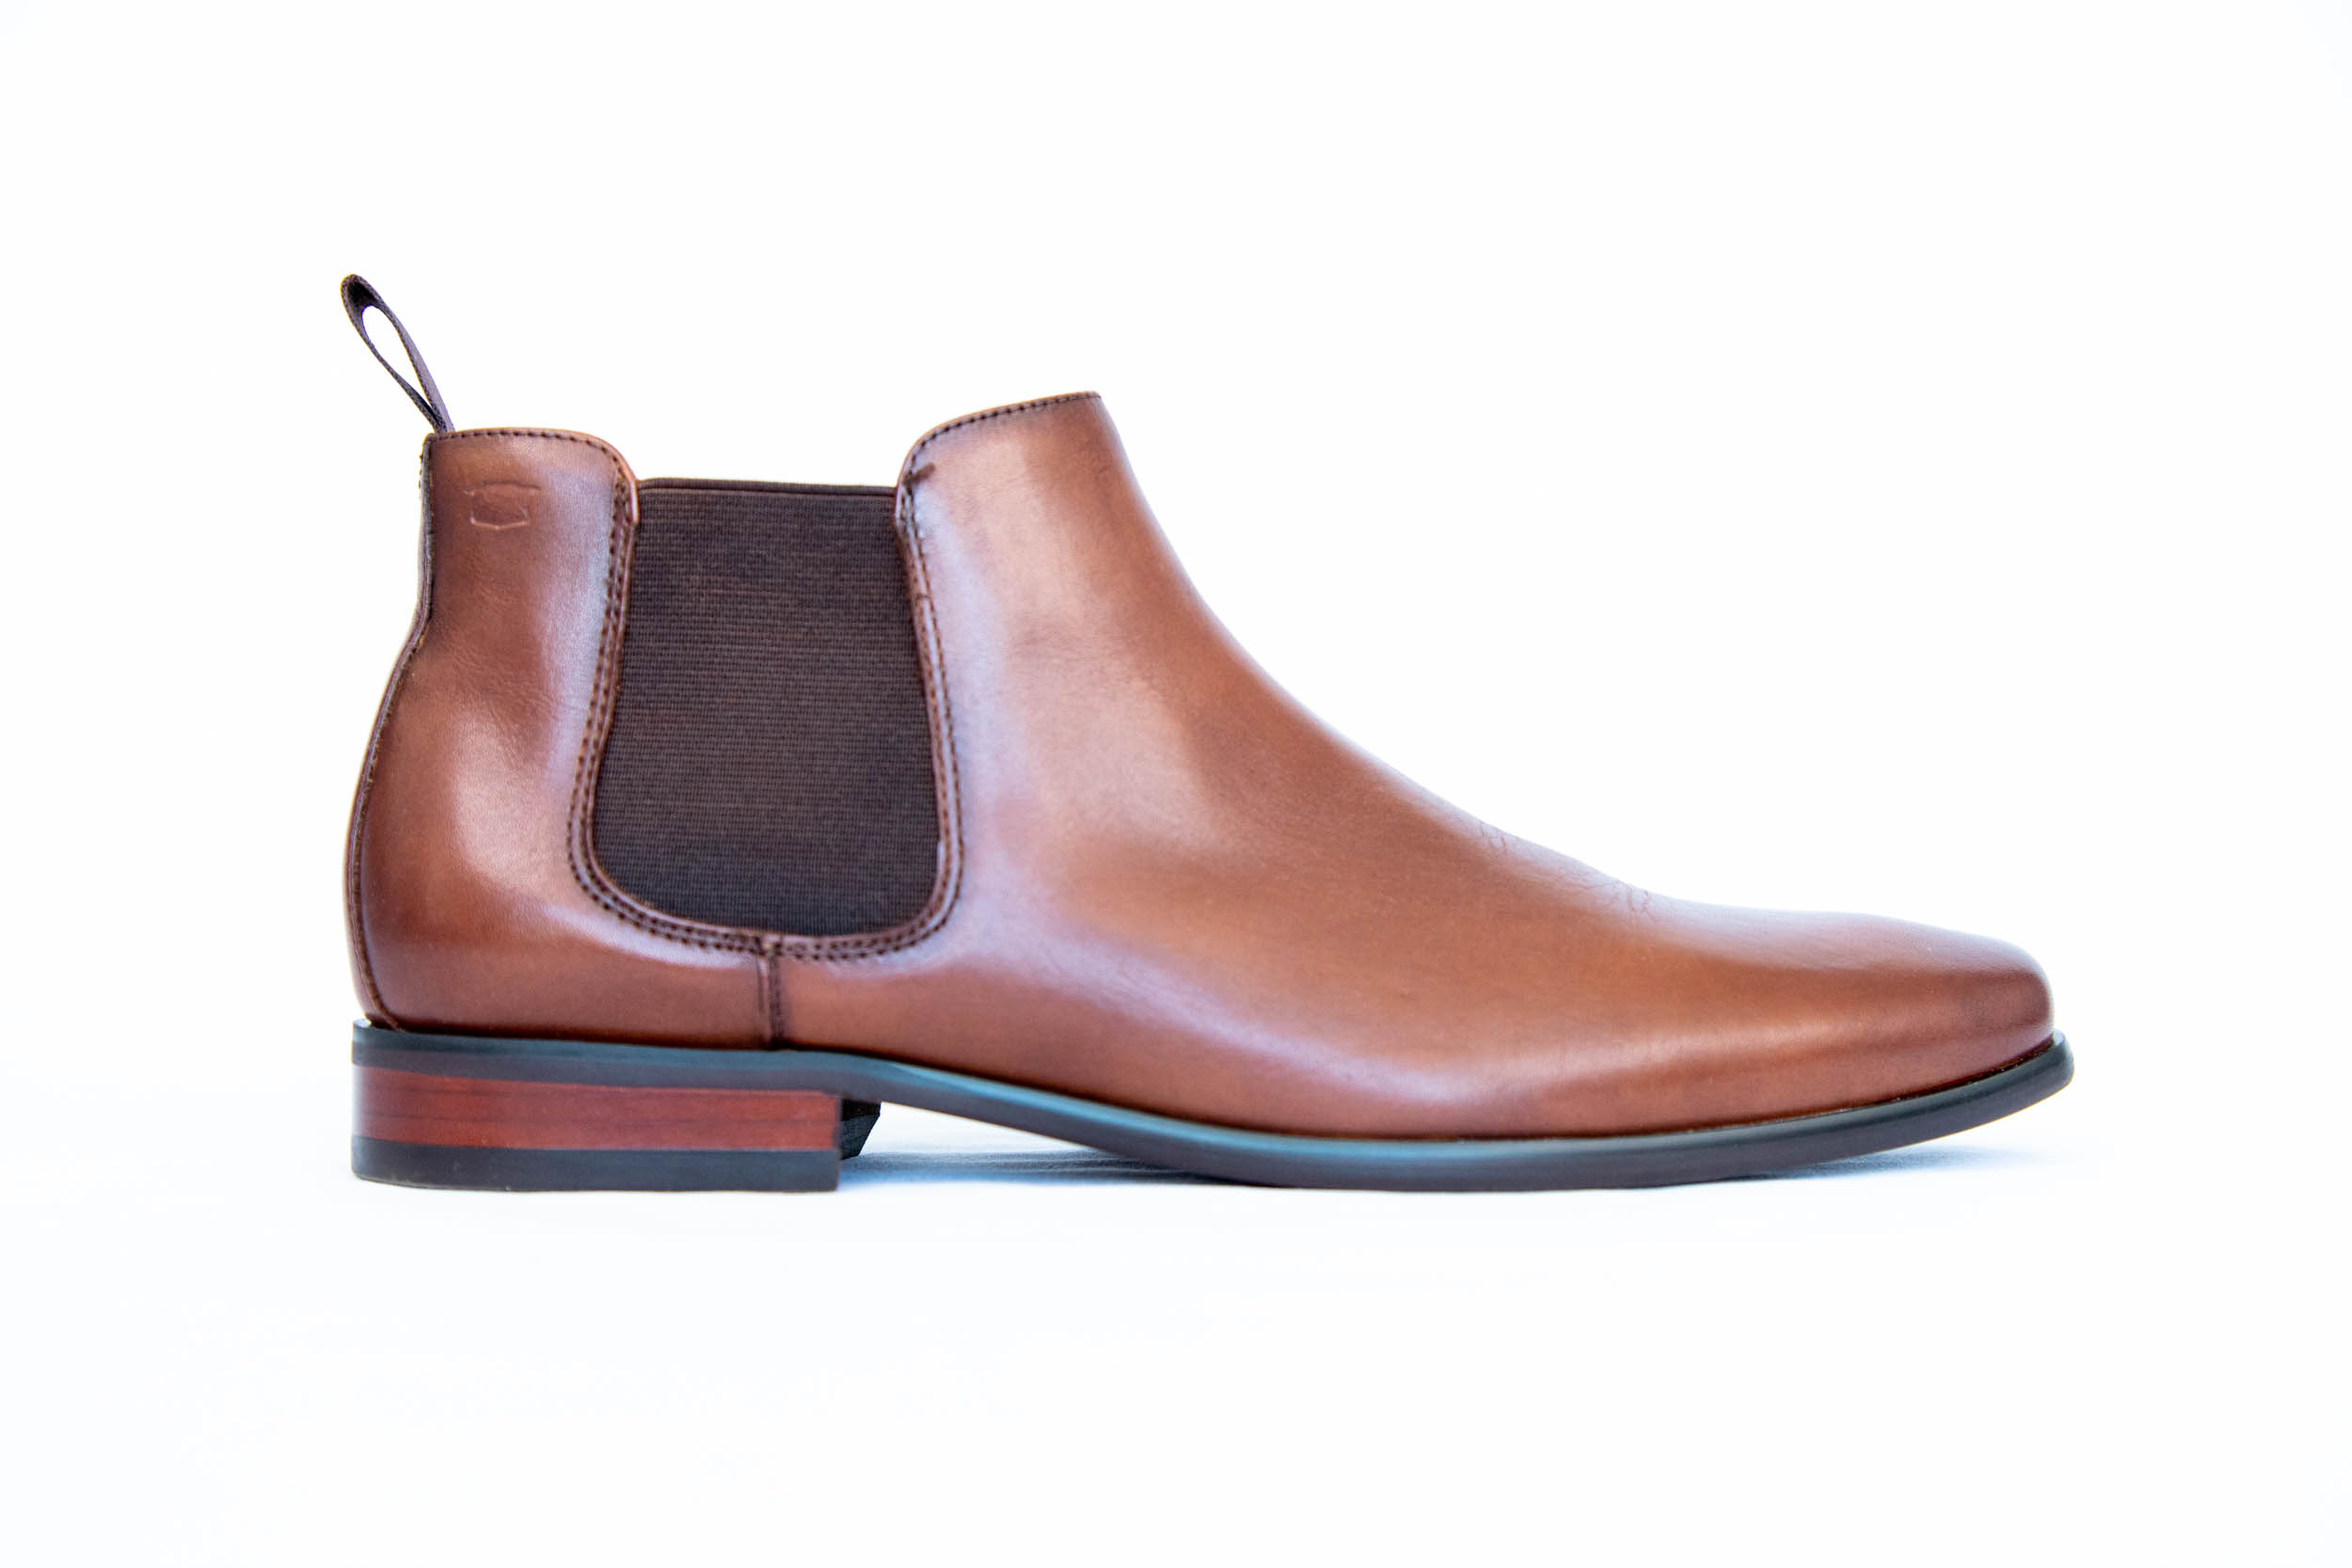 Product photography for Rundle Tailoring. A brown leather shoe against a white backdrop